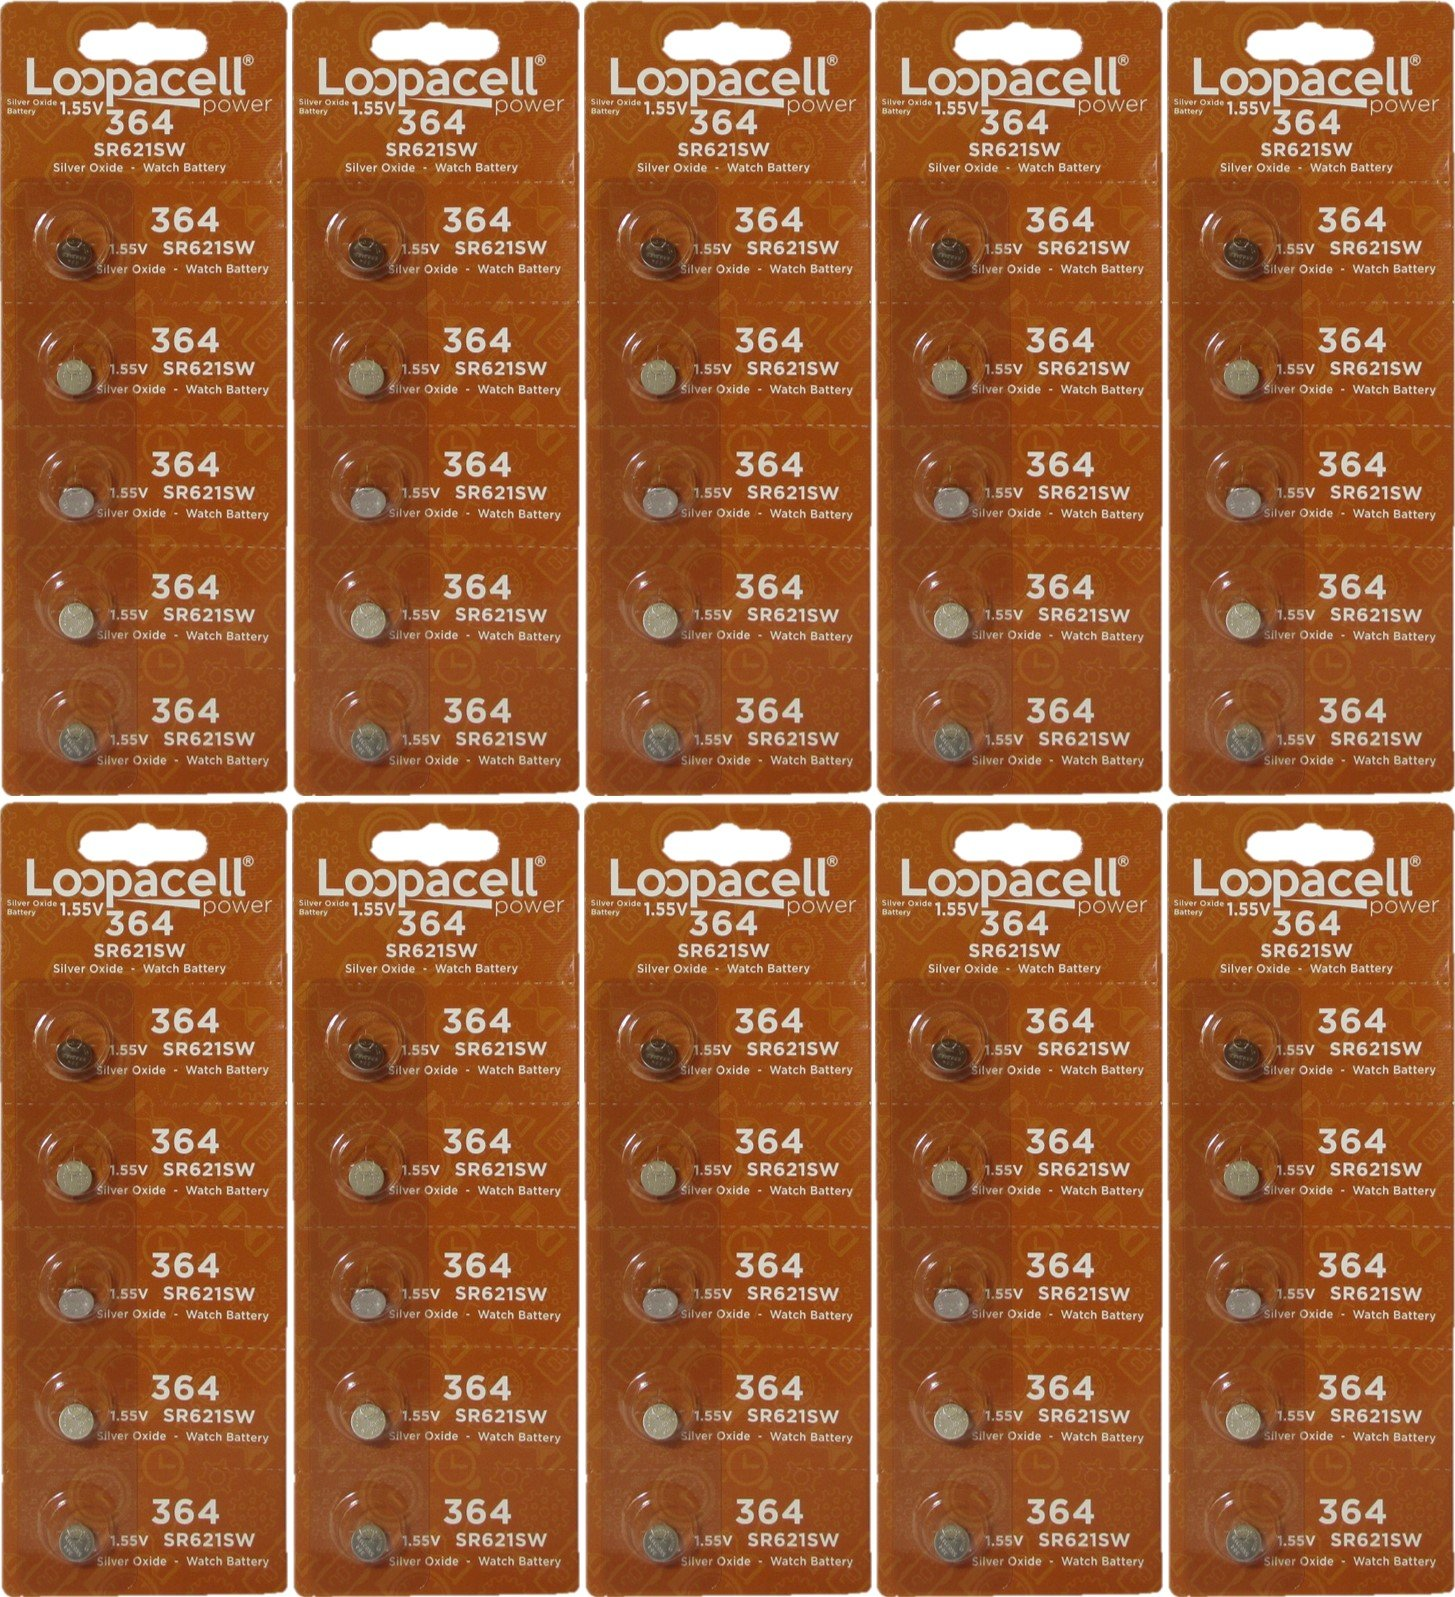 LOOPACELL Watch Batteries 364/363 SR621SW Battery New 50 Pack